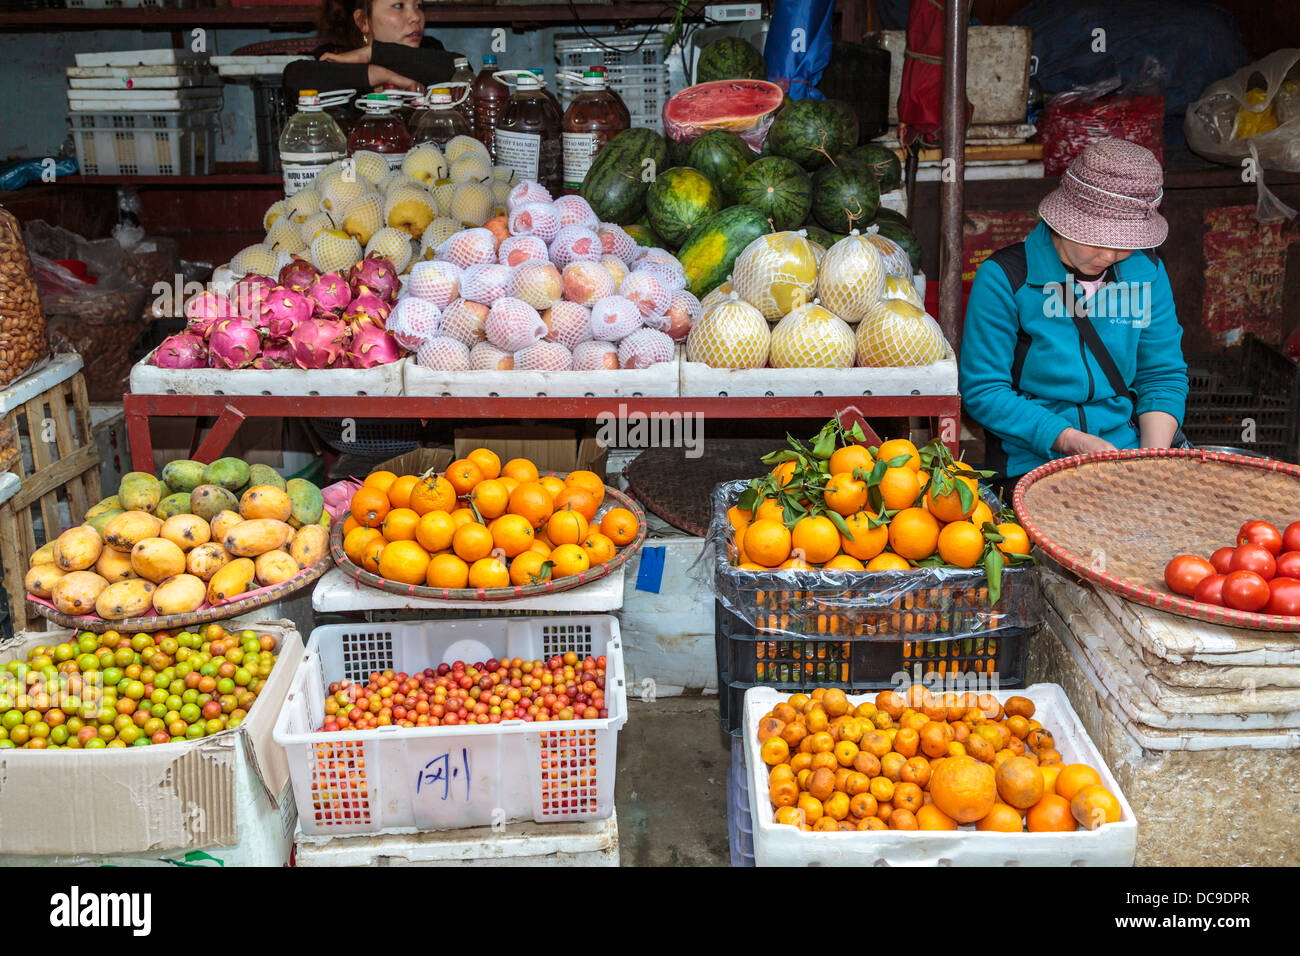 A fruit market in Sapa, Vietnam, Asia. - Stock Image